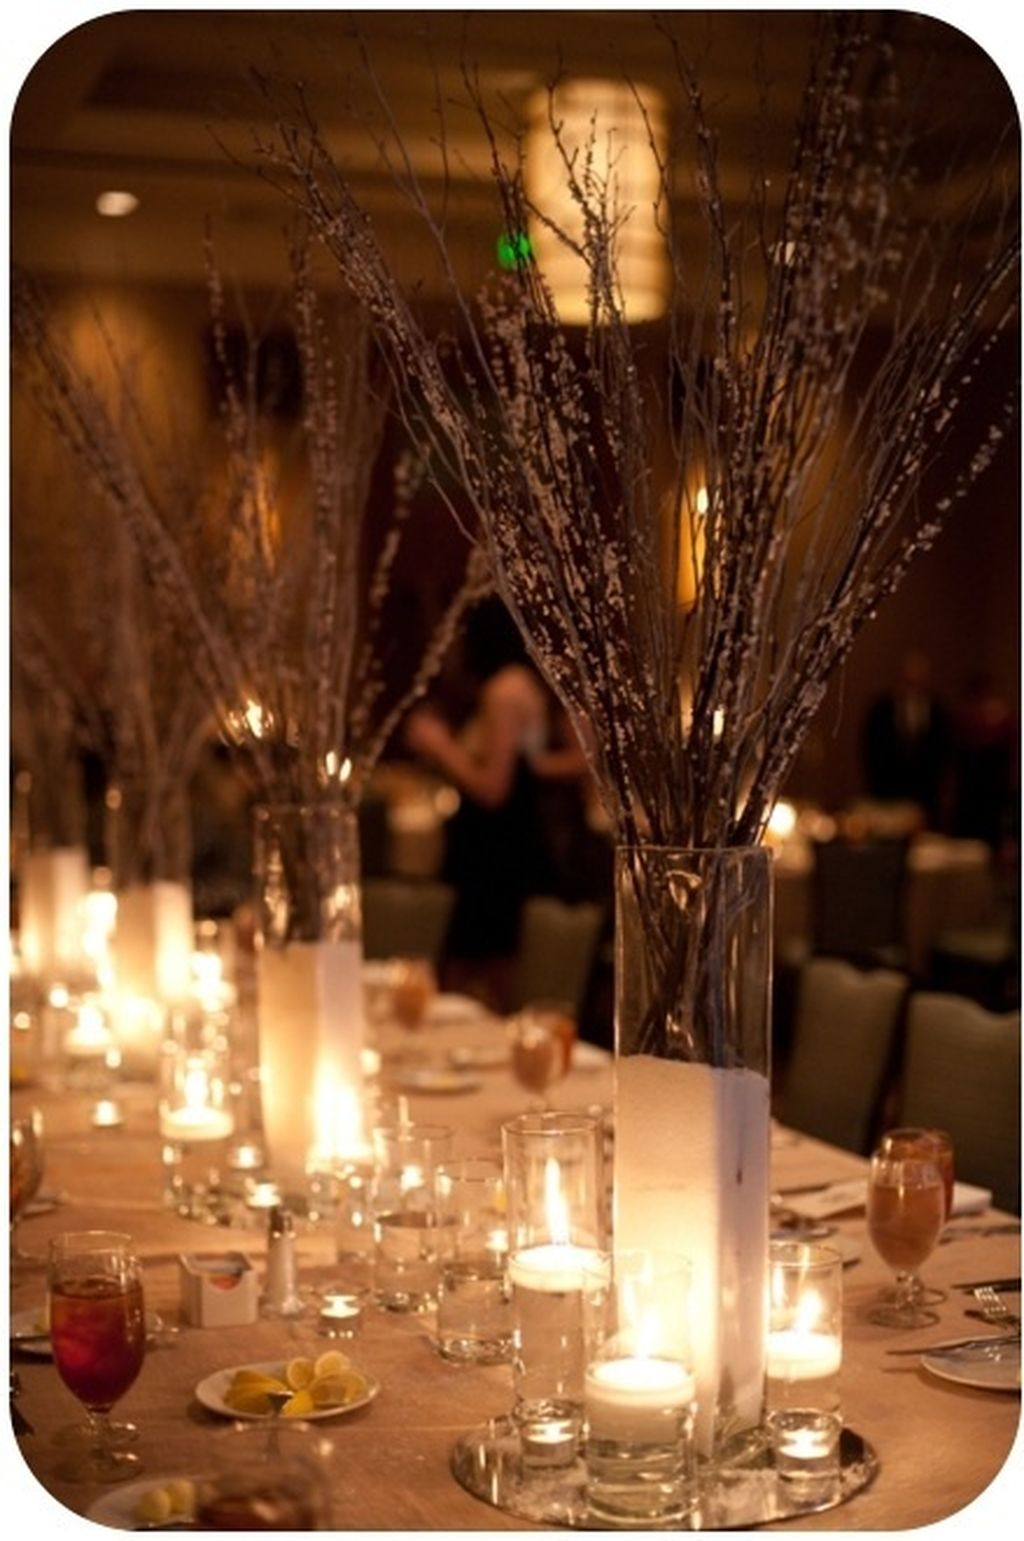 Inspiring Modern Rustic Christmas Centerpieces Ideas With Candles 83